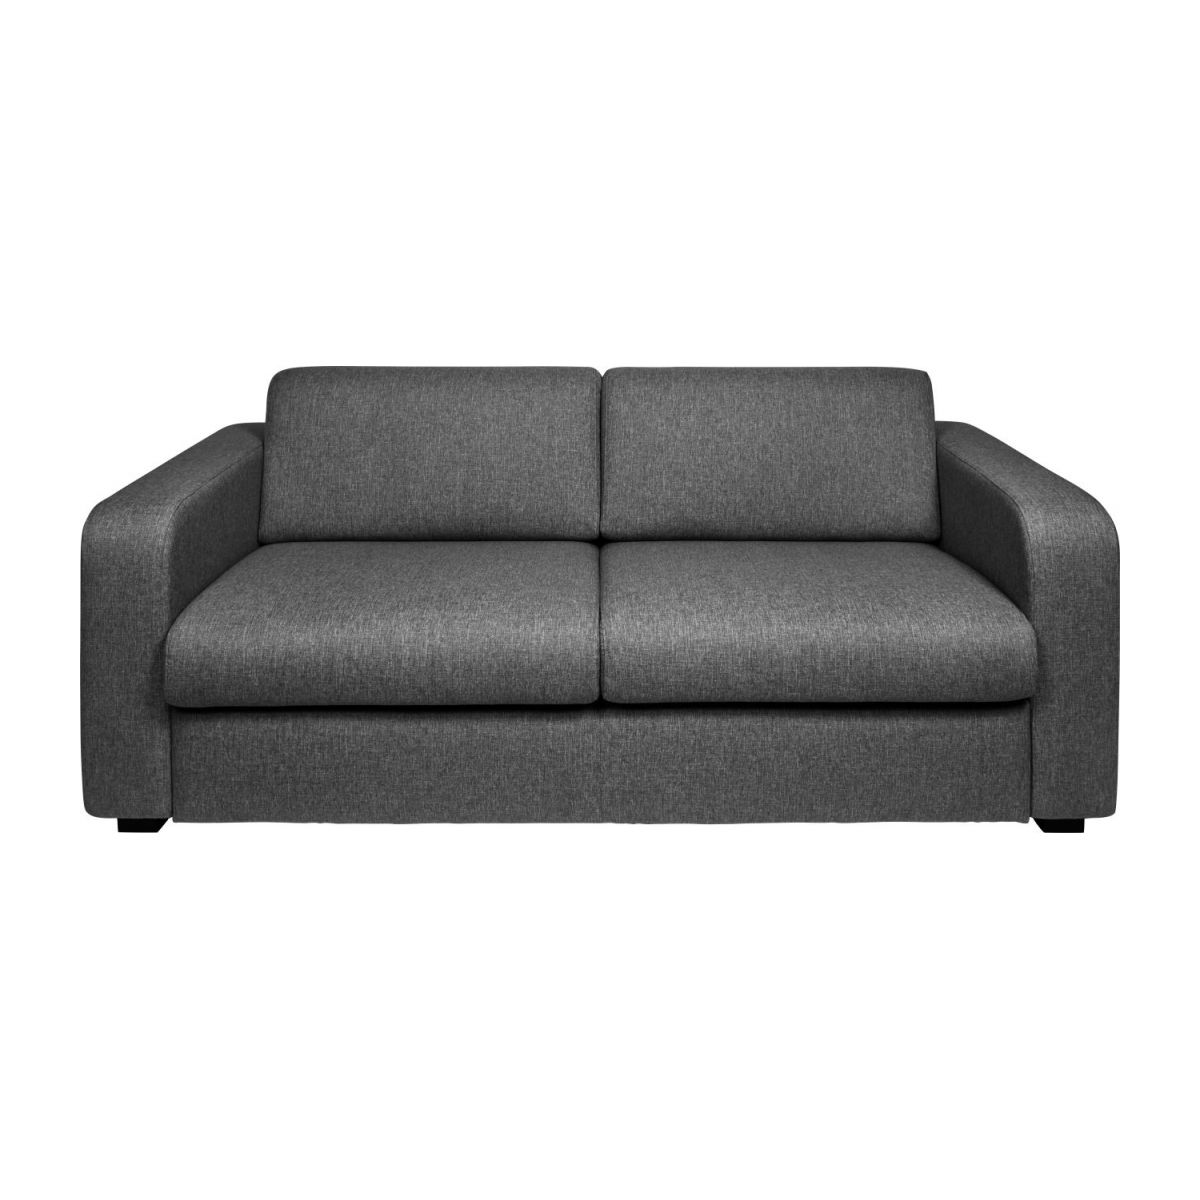 3-seater fabric sofa n°2